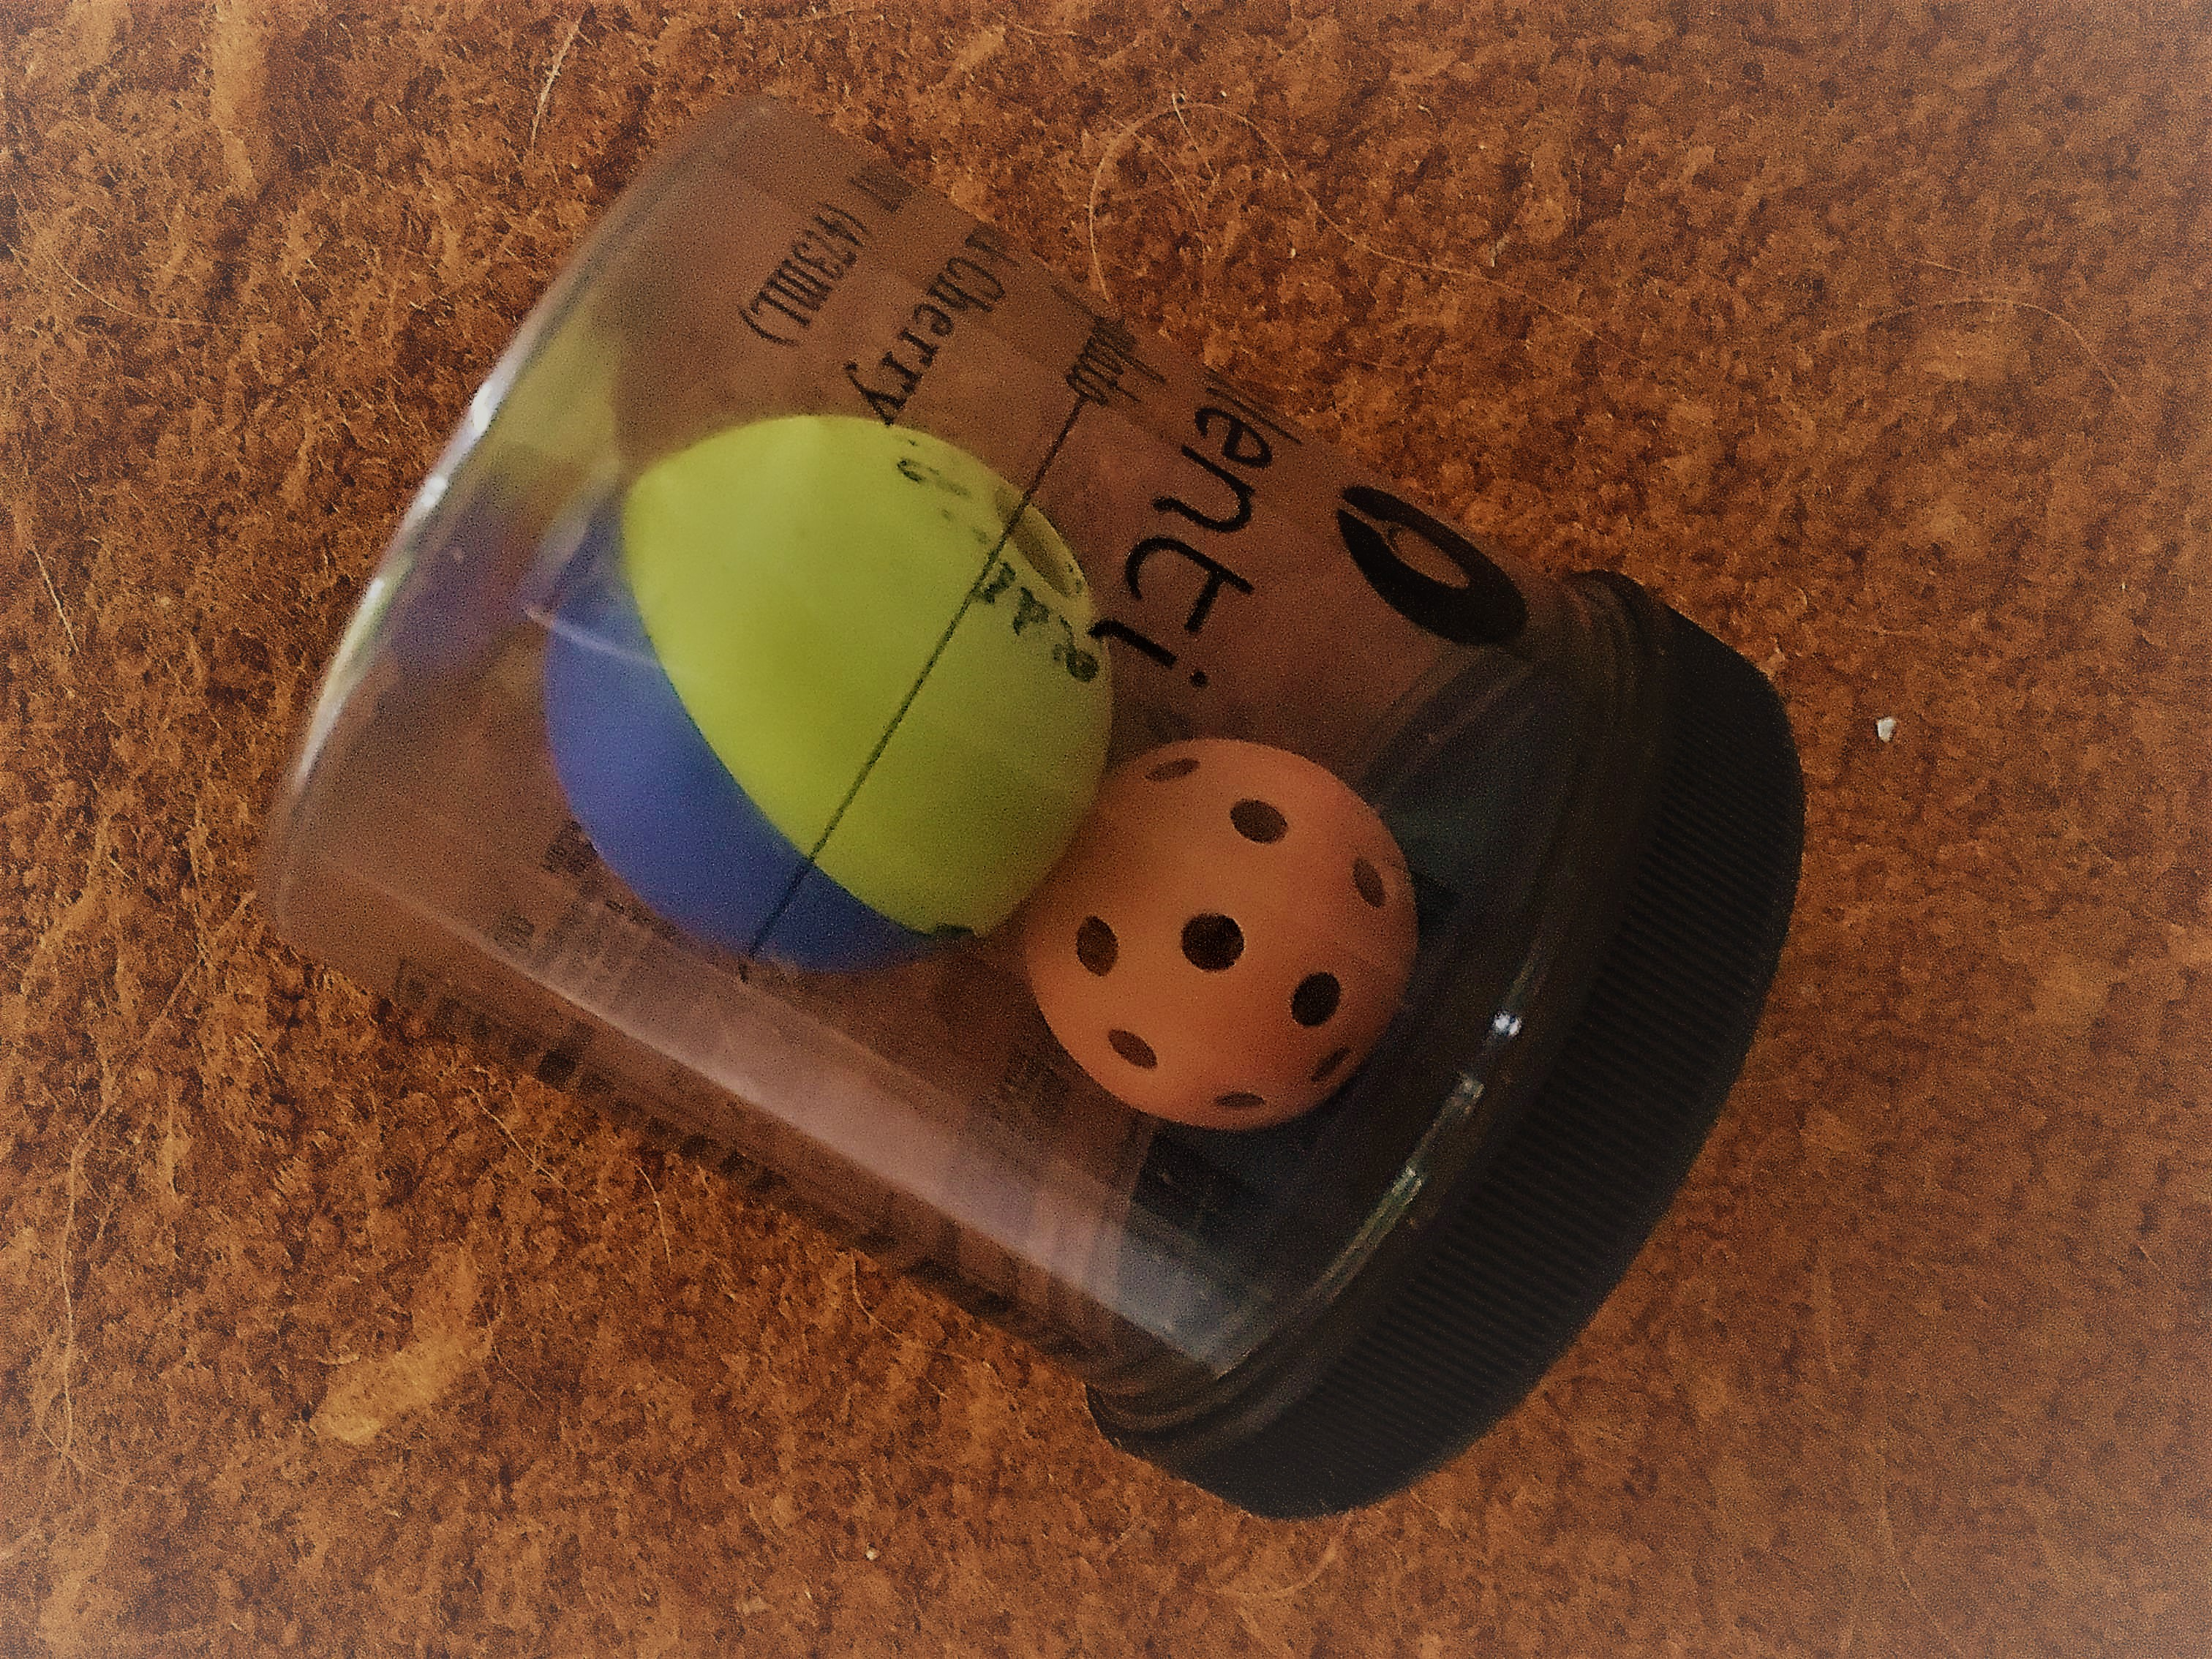 An Our Pets ball and a foraging ping-pong, stuffed and placed inside larger object.